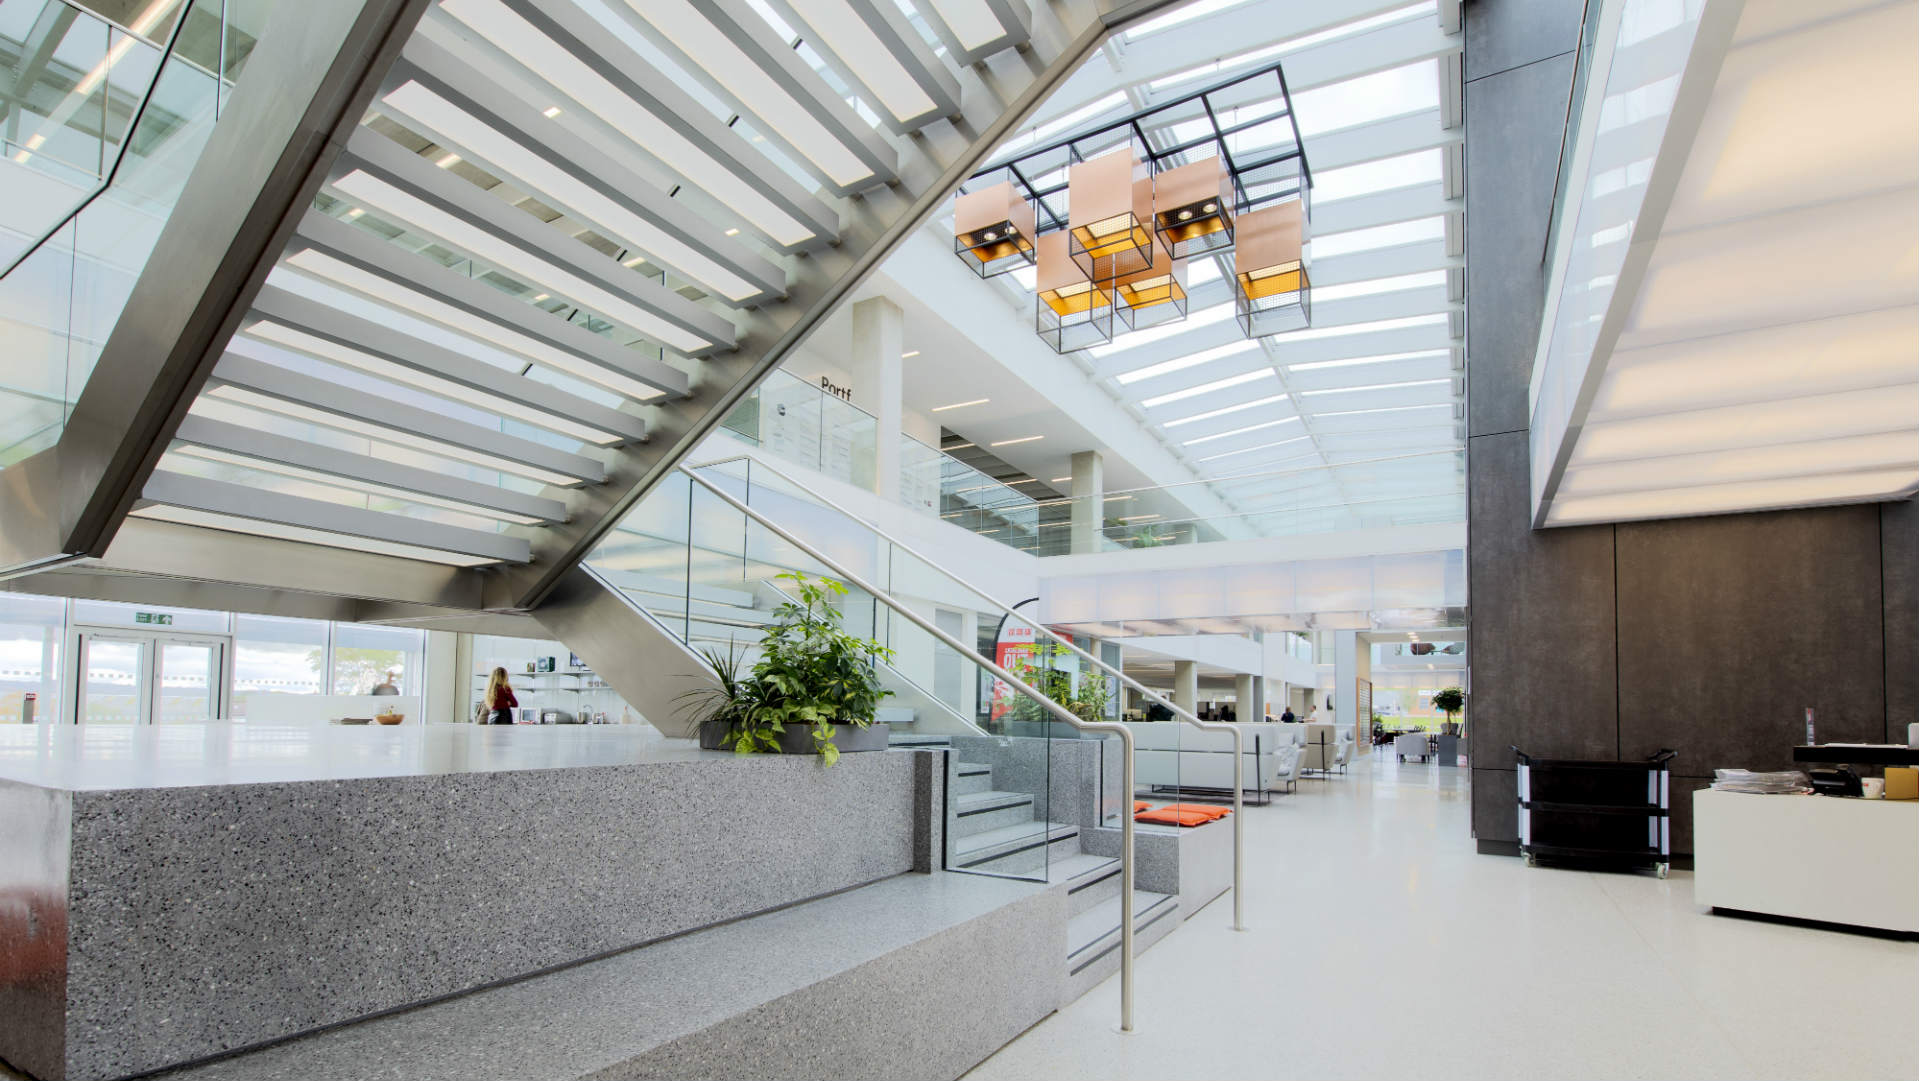 Cef Embraces Innovative Lighting In New